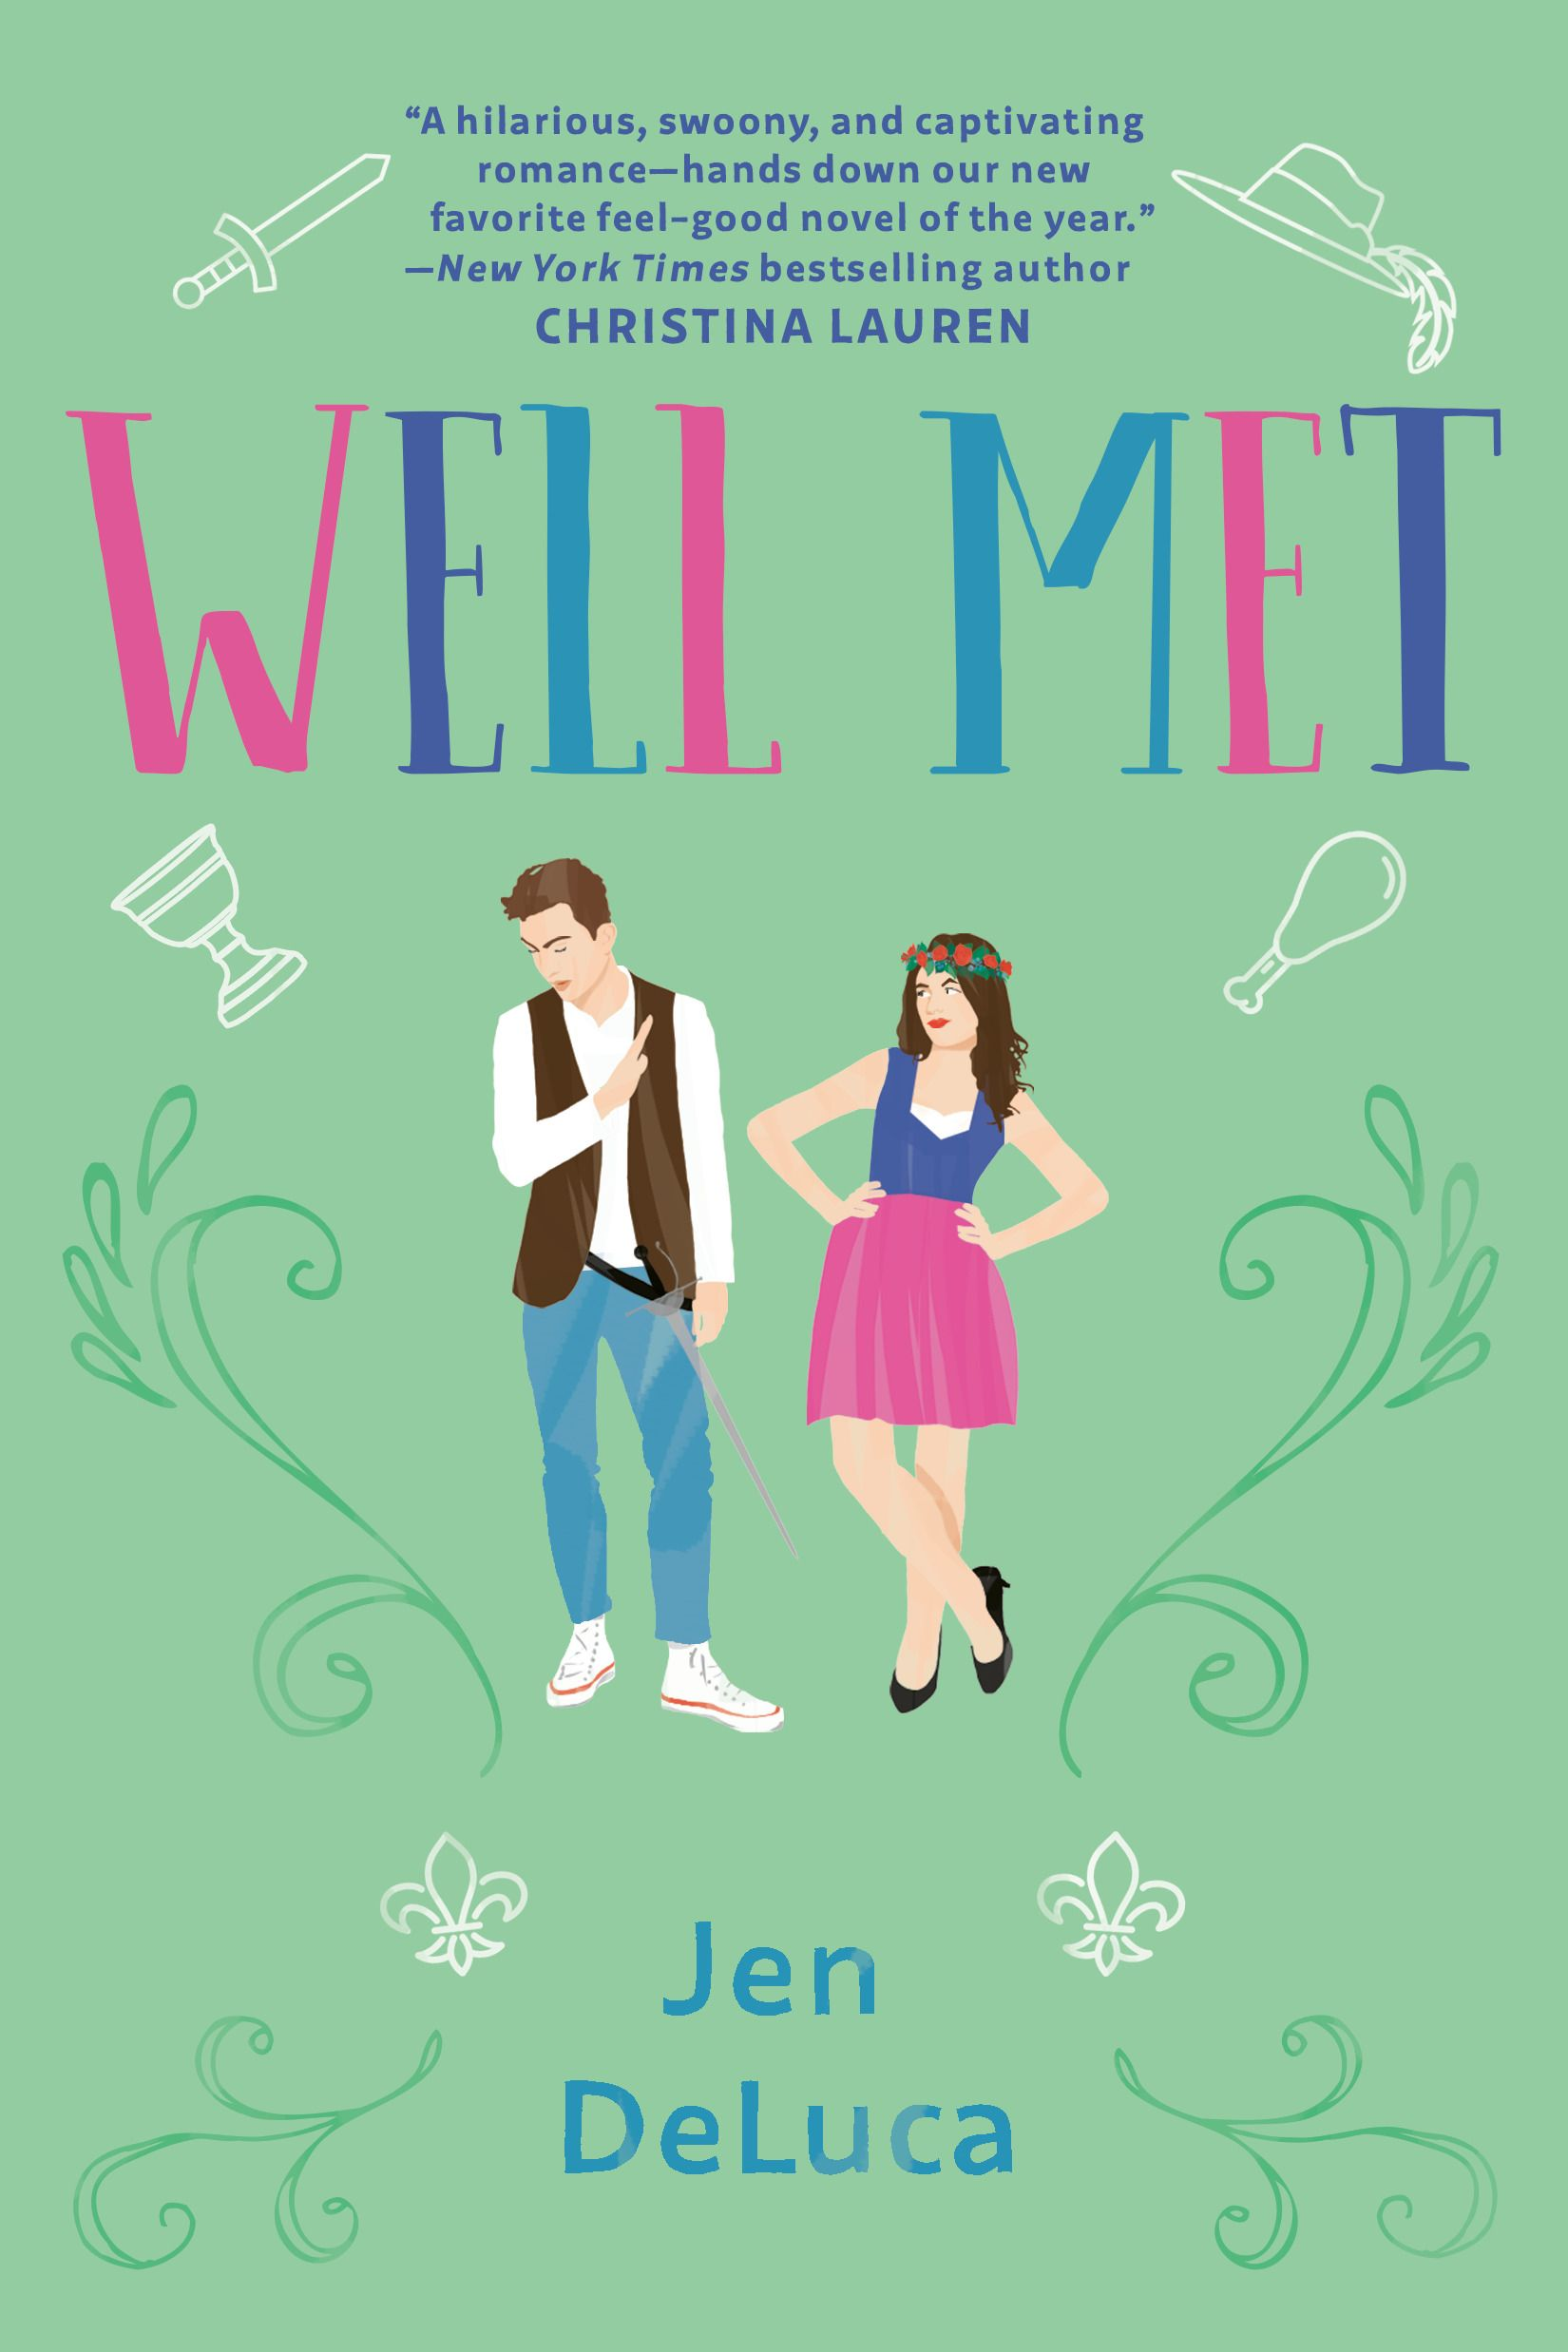 September 3 (Berkley) - All's faire in love and war for two sworn enemies who indulge in a harmless flirtation in a laugh-out-loud rom-com from debut author, Jen DeLuca.Emily knew there would be strings attached when she relocated to the small town of Willow Creek, Maryland, for the summer to help her sister recover from an accident, but who could anticipate getting roped into volunteering for the local Renaissance Faire alongside her teenaged niece? Or that the irritating and inscrutable schoolteacher in charge of the volunteers would be so annoying that she finds it impossible to stop thinking about him?The faire is Simon's family legacy and from the start he makes clear he doesn't have time for Emily's lighthearted approach to life, her oddball Shakespeare conspiracy theories, or her endless suggestions for new acts to shake things up. Yet on the faire grounds he becomes a different person, flirting freely with Emily when she's in her revealing wench's costume. But is this attraction real, or just part of the characters they're portraying?This summer was only ever supposed to be a pit stop on the way to somewhere else for Emily, but soon she can't seem to shake the fantasy of establishing something more with Simon, or a permanent home of her own in Willow Creek.